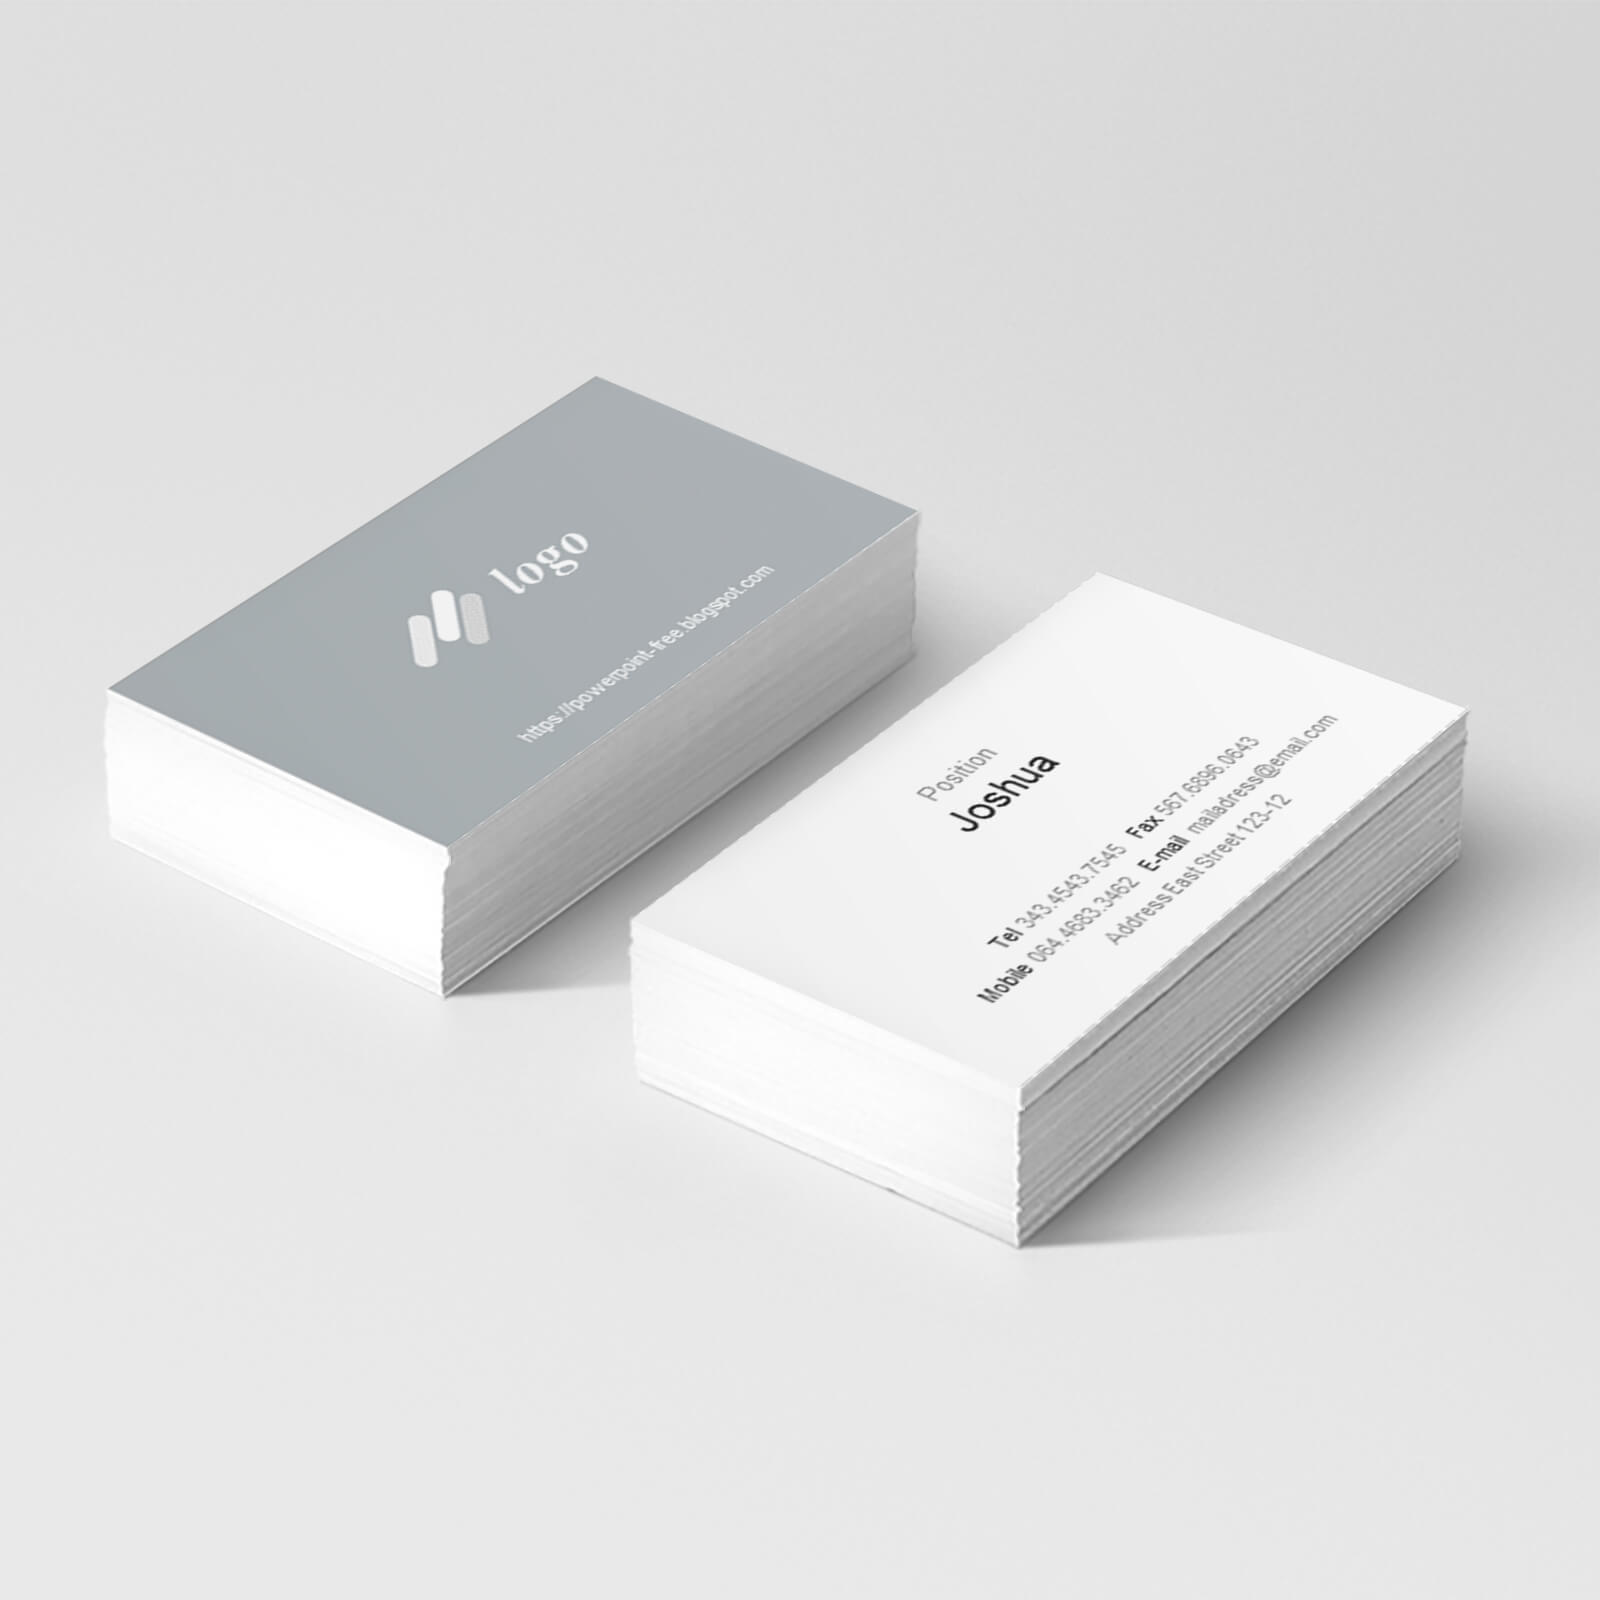 Basic Business Card Powerpoint Templates - Powerpoint Free Pertaining To Business Card Template Powerpoint Free